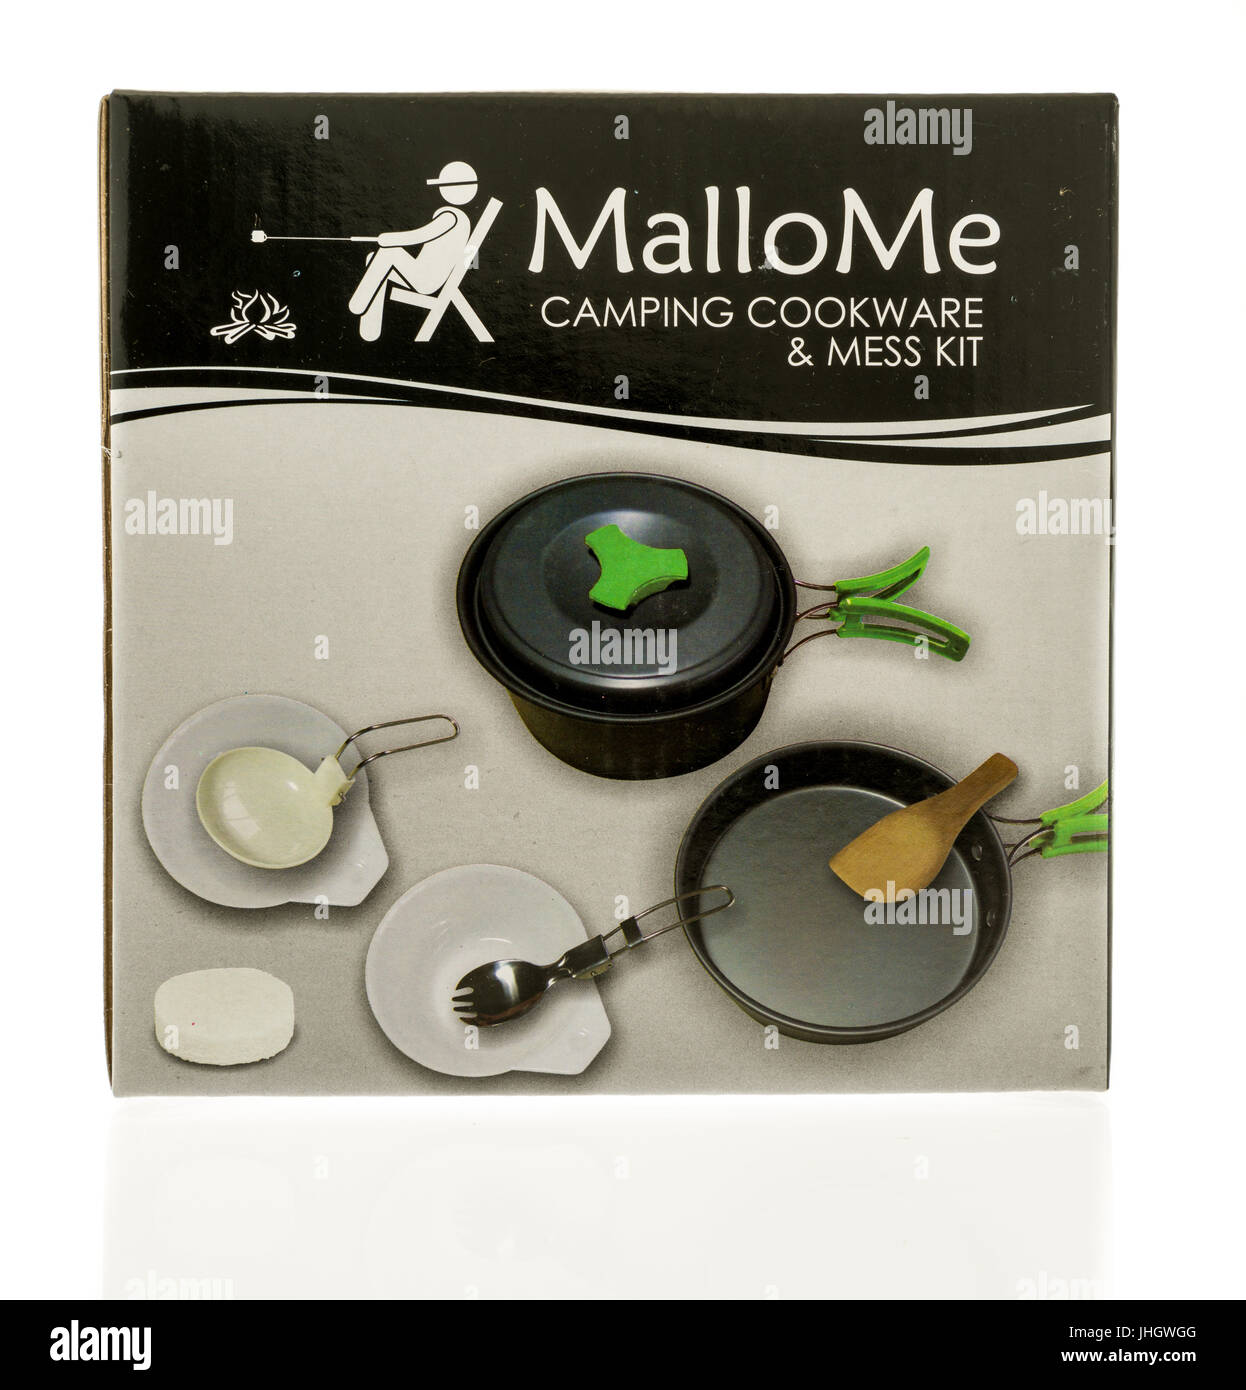 Winneconne, WI - 10 July 2017: A box of Mallome camping cookware ane mess kit on an isolated background. - Stock Image